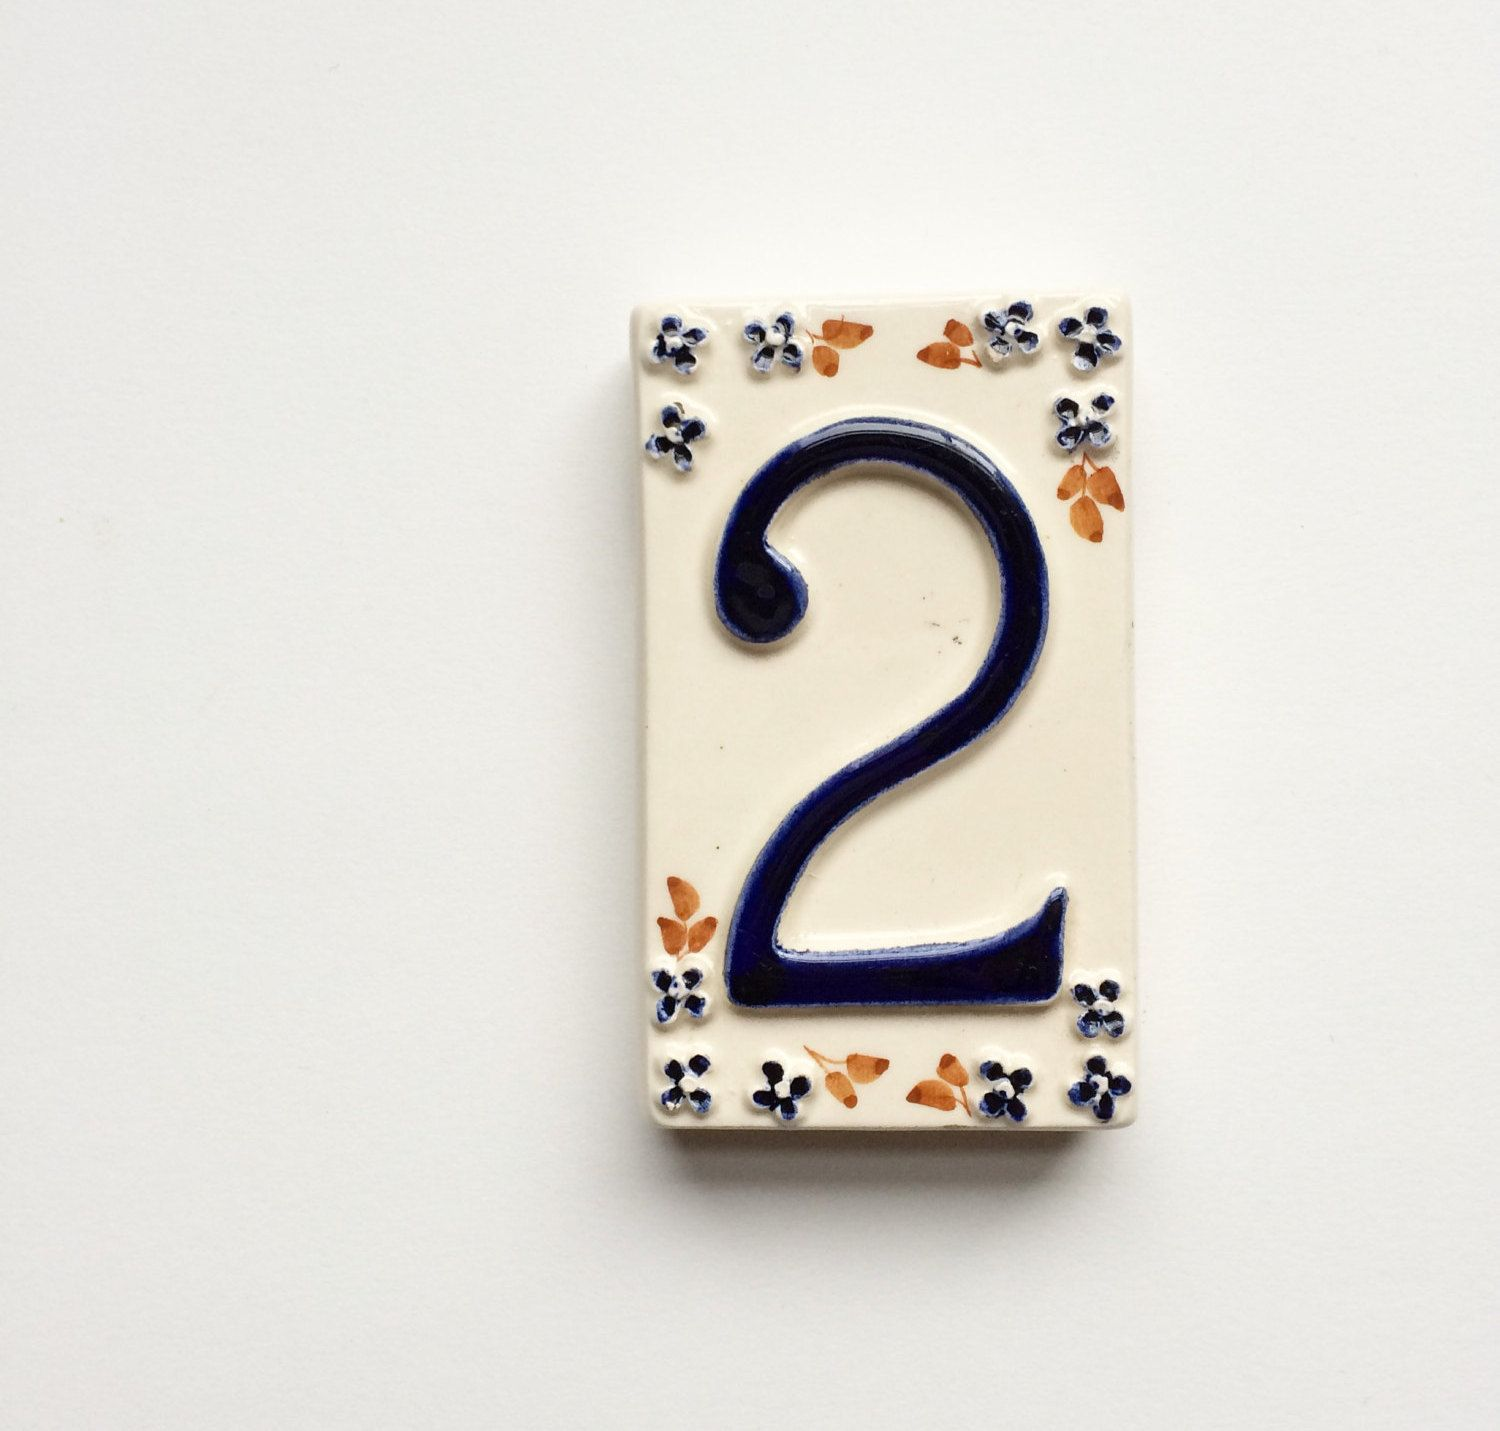 Vintage ceramic tile number 2 two house pottery shabby chic vintage ceramic tile number 2 two house pottery shabby chic dailygadgetfo Choice Image